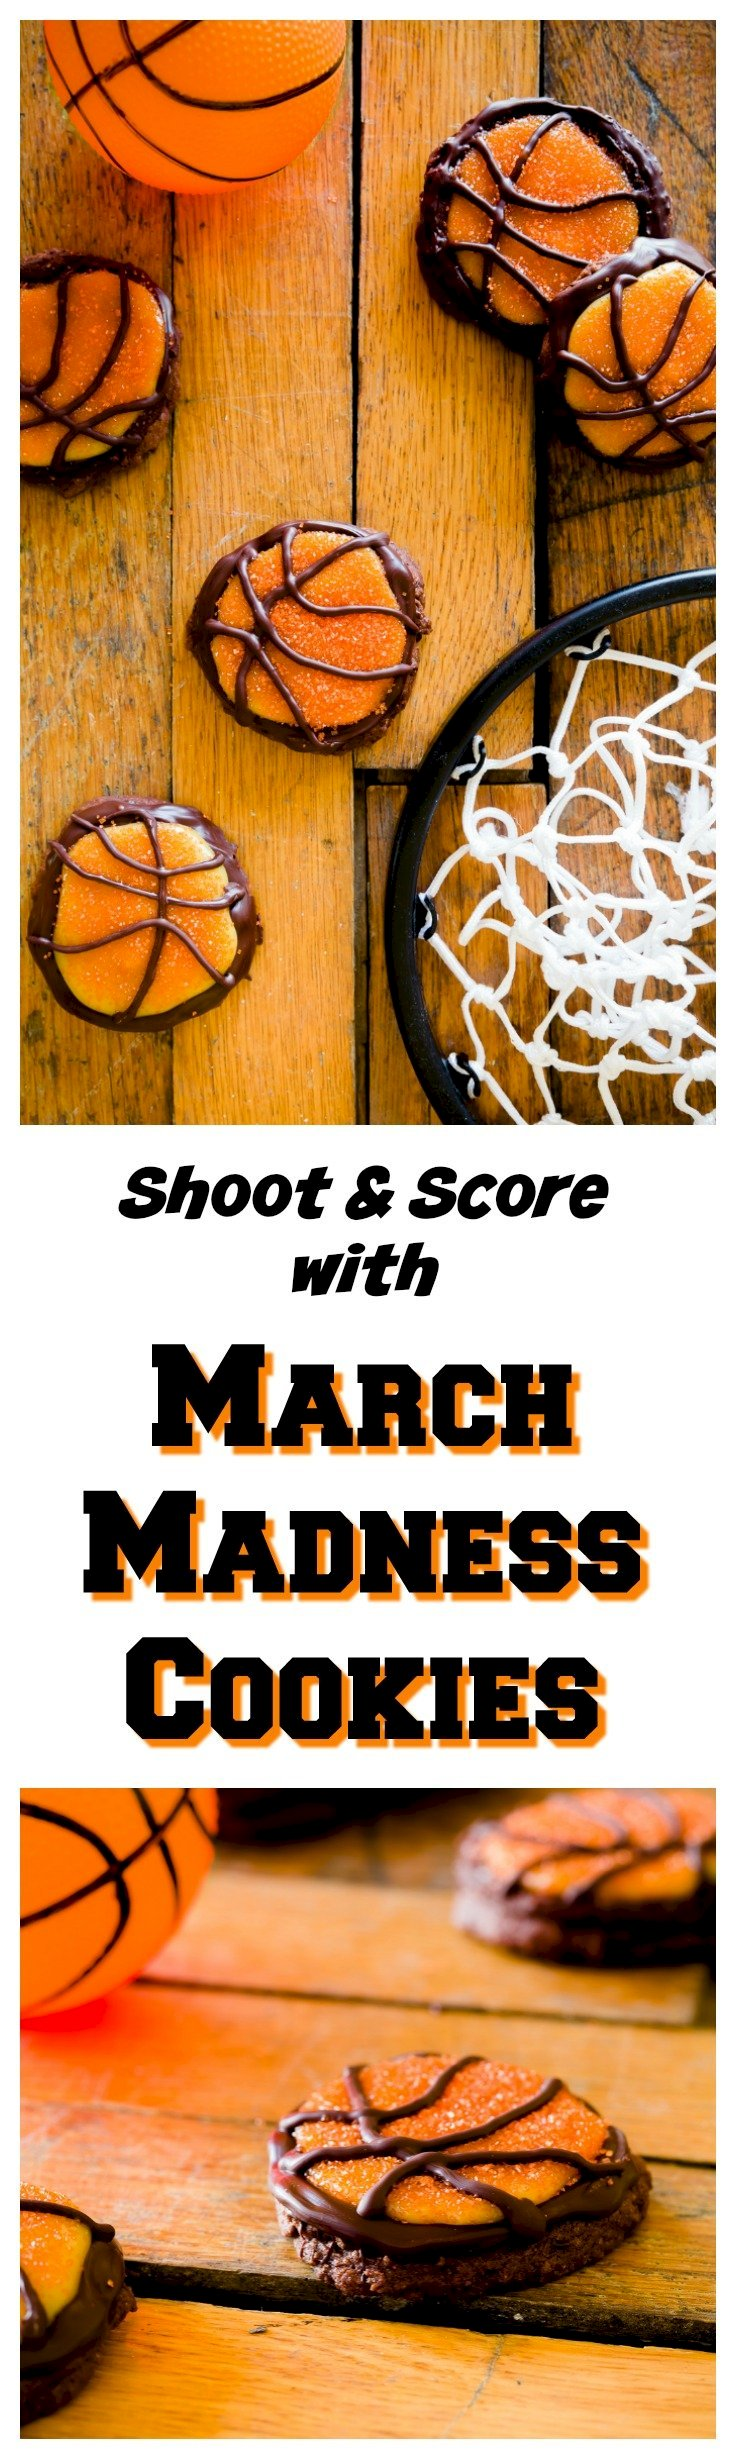 Shoot and Score with March Madness Cookies